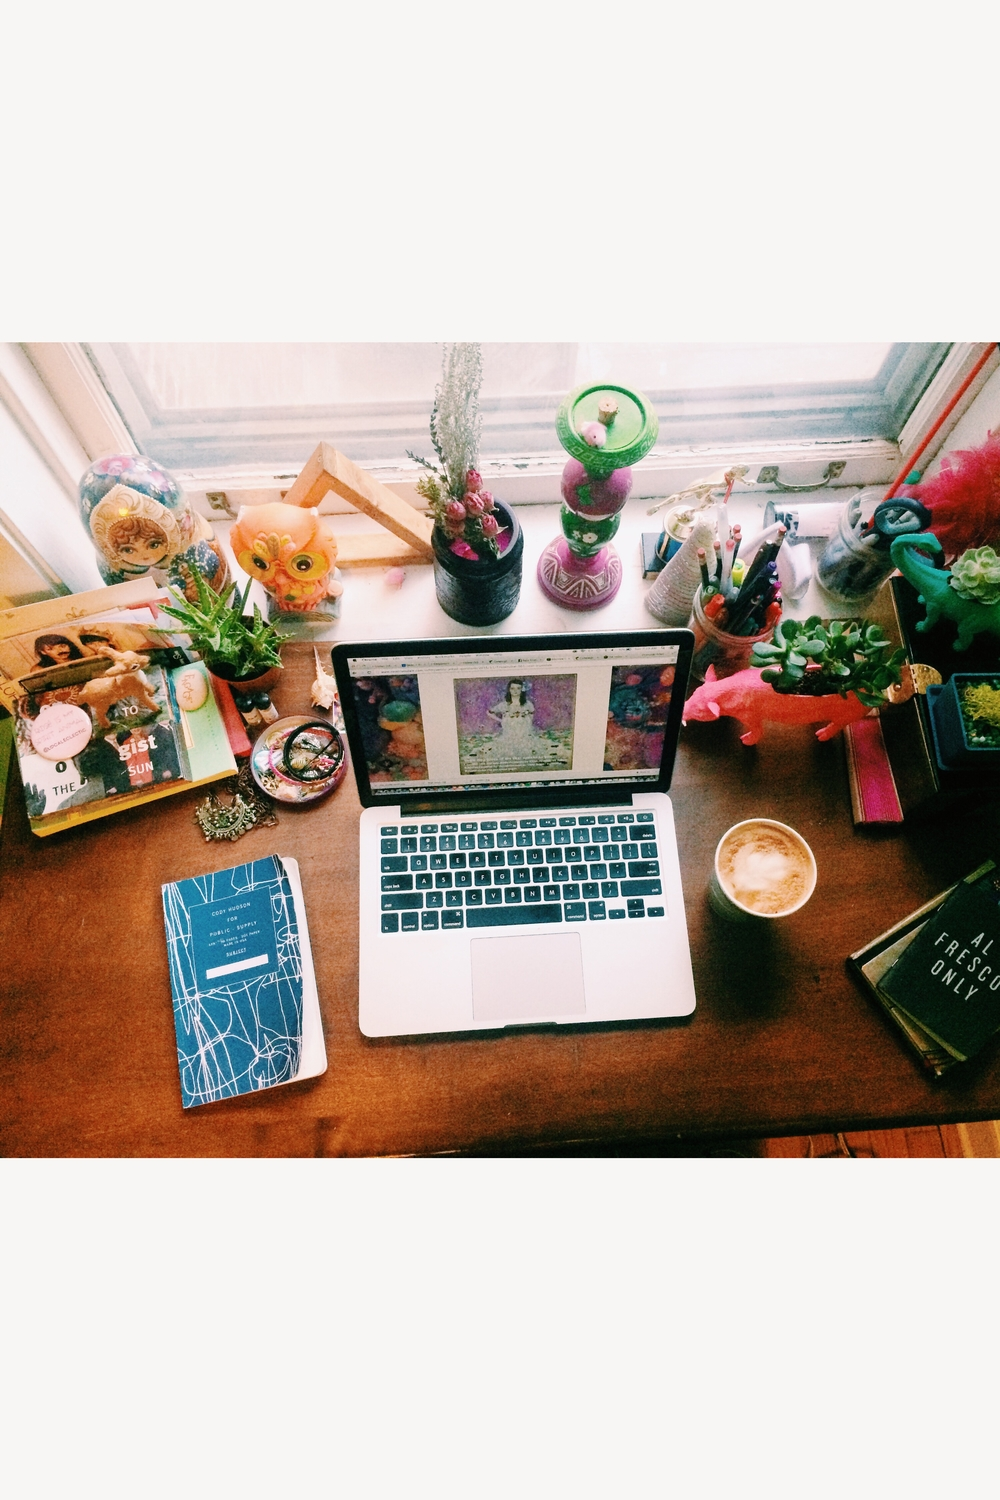 Show us a picture of your workspace